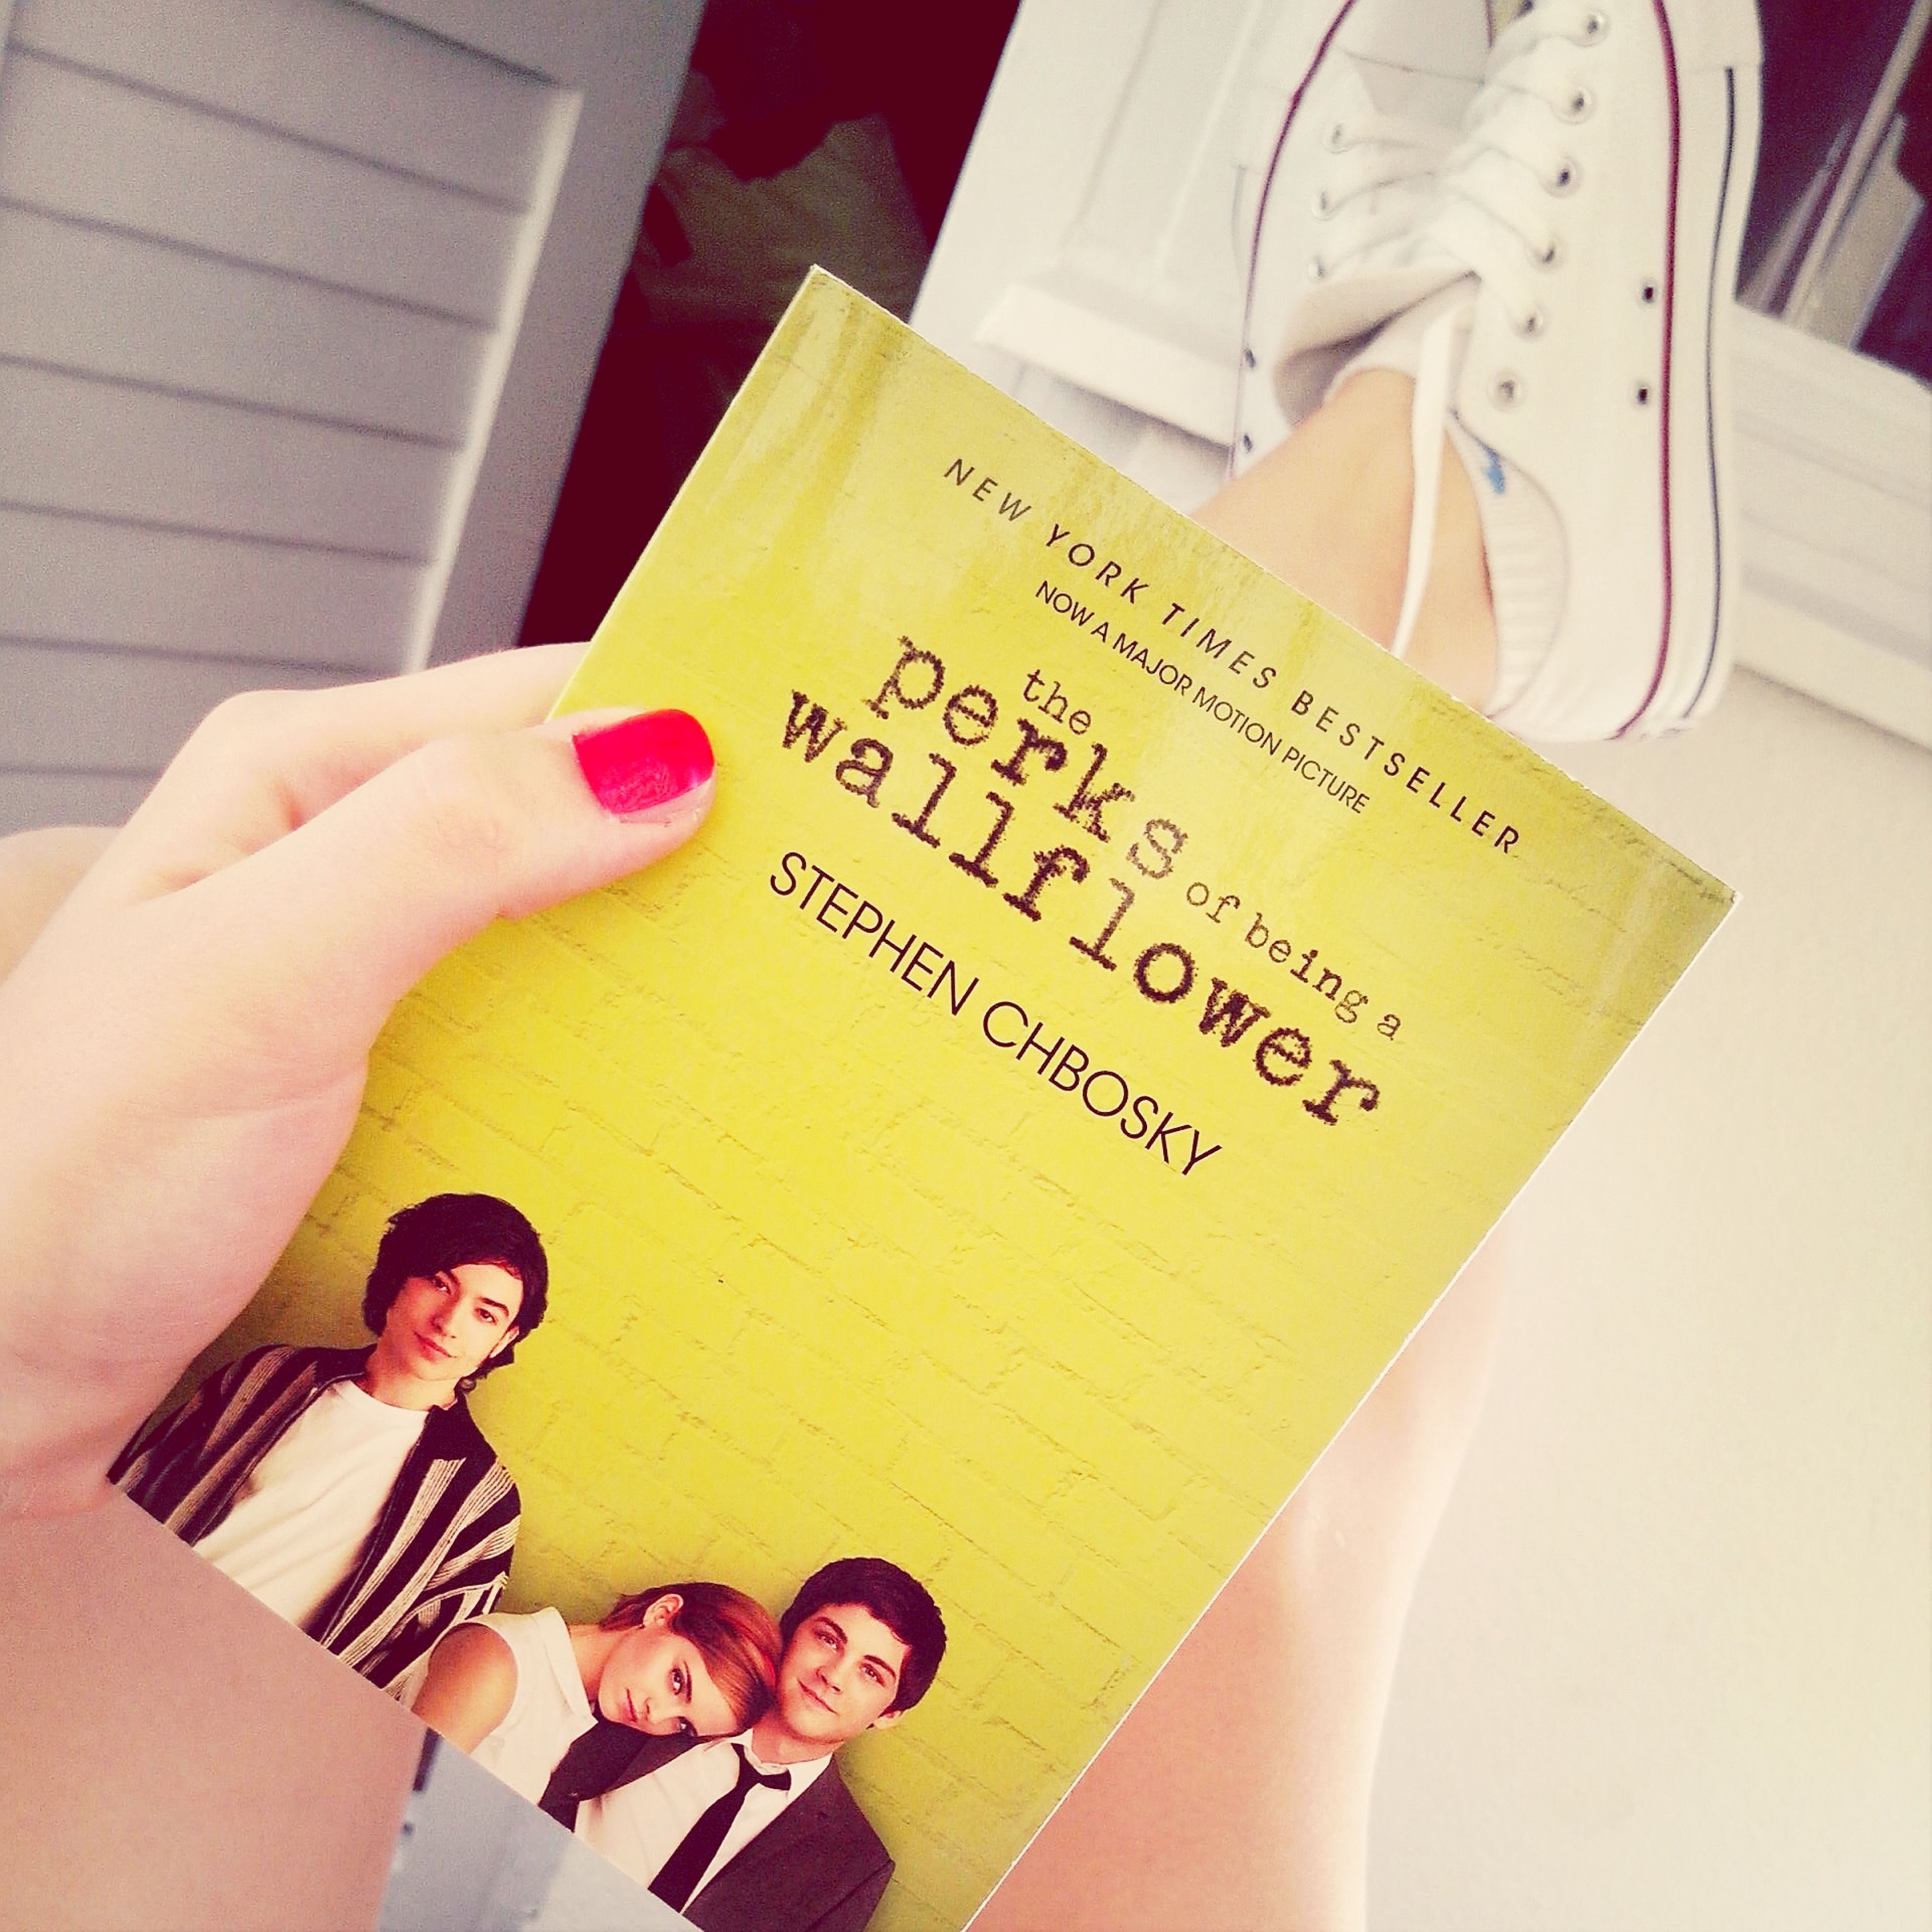 Enjoying The Book Happiness The Best Homesweethome :))